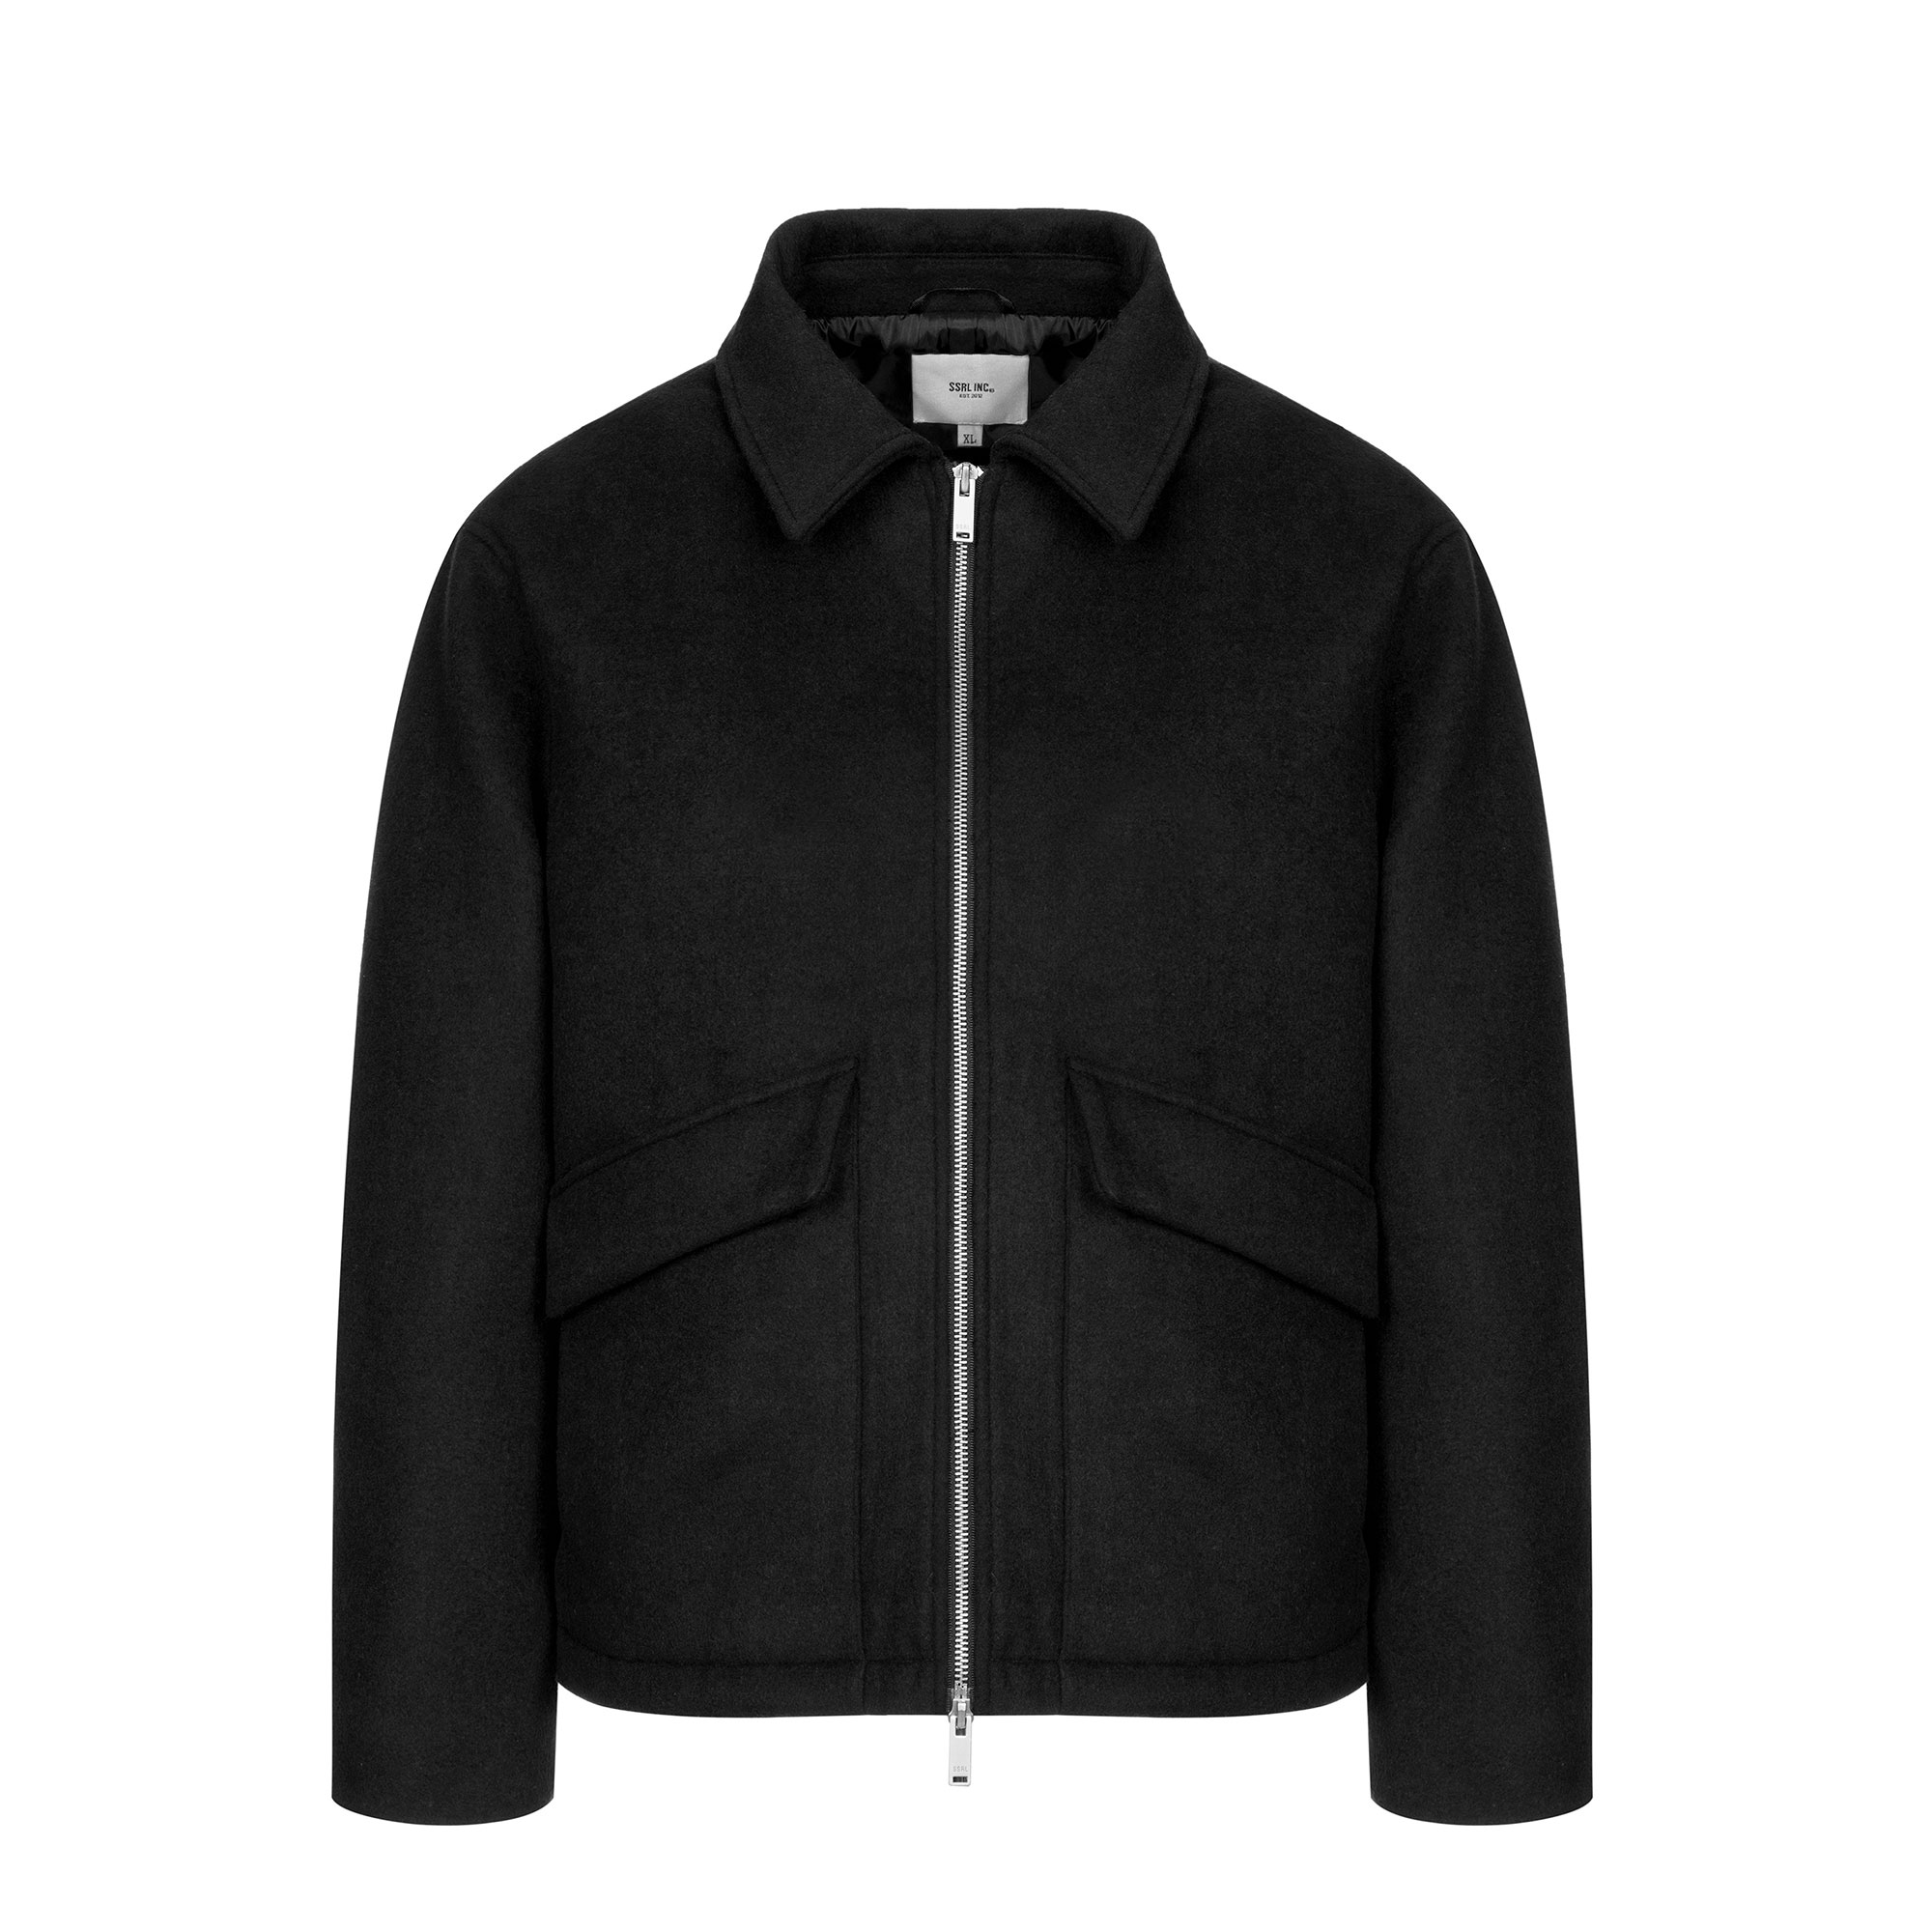 minimal wool zip-up jacket / black